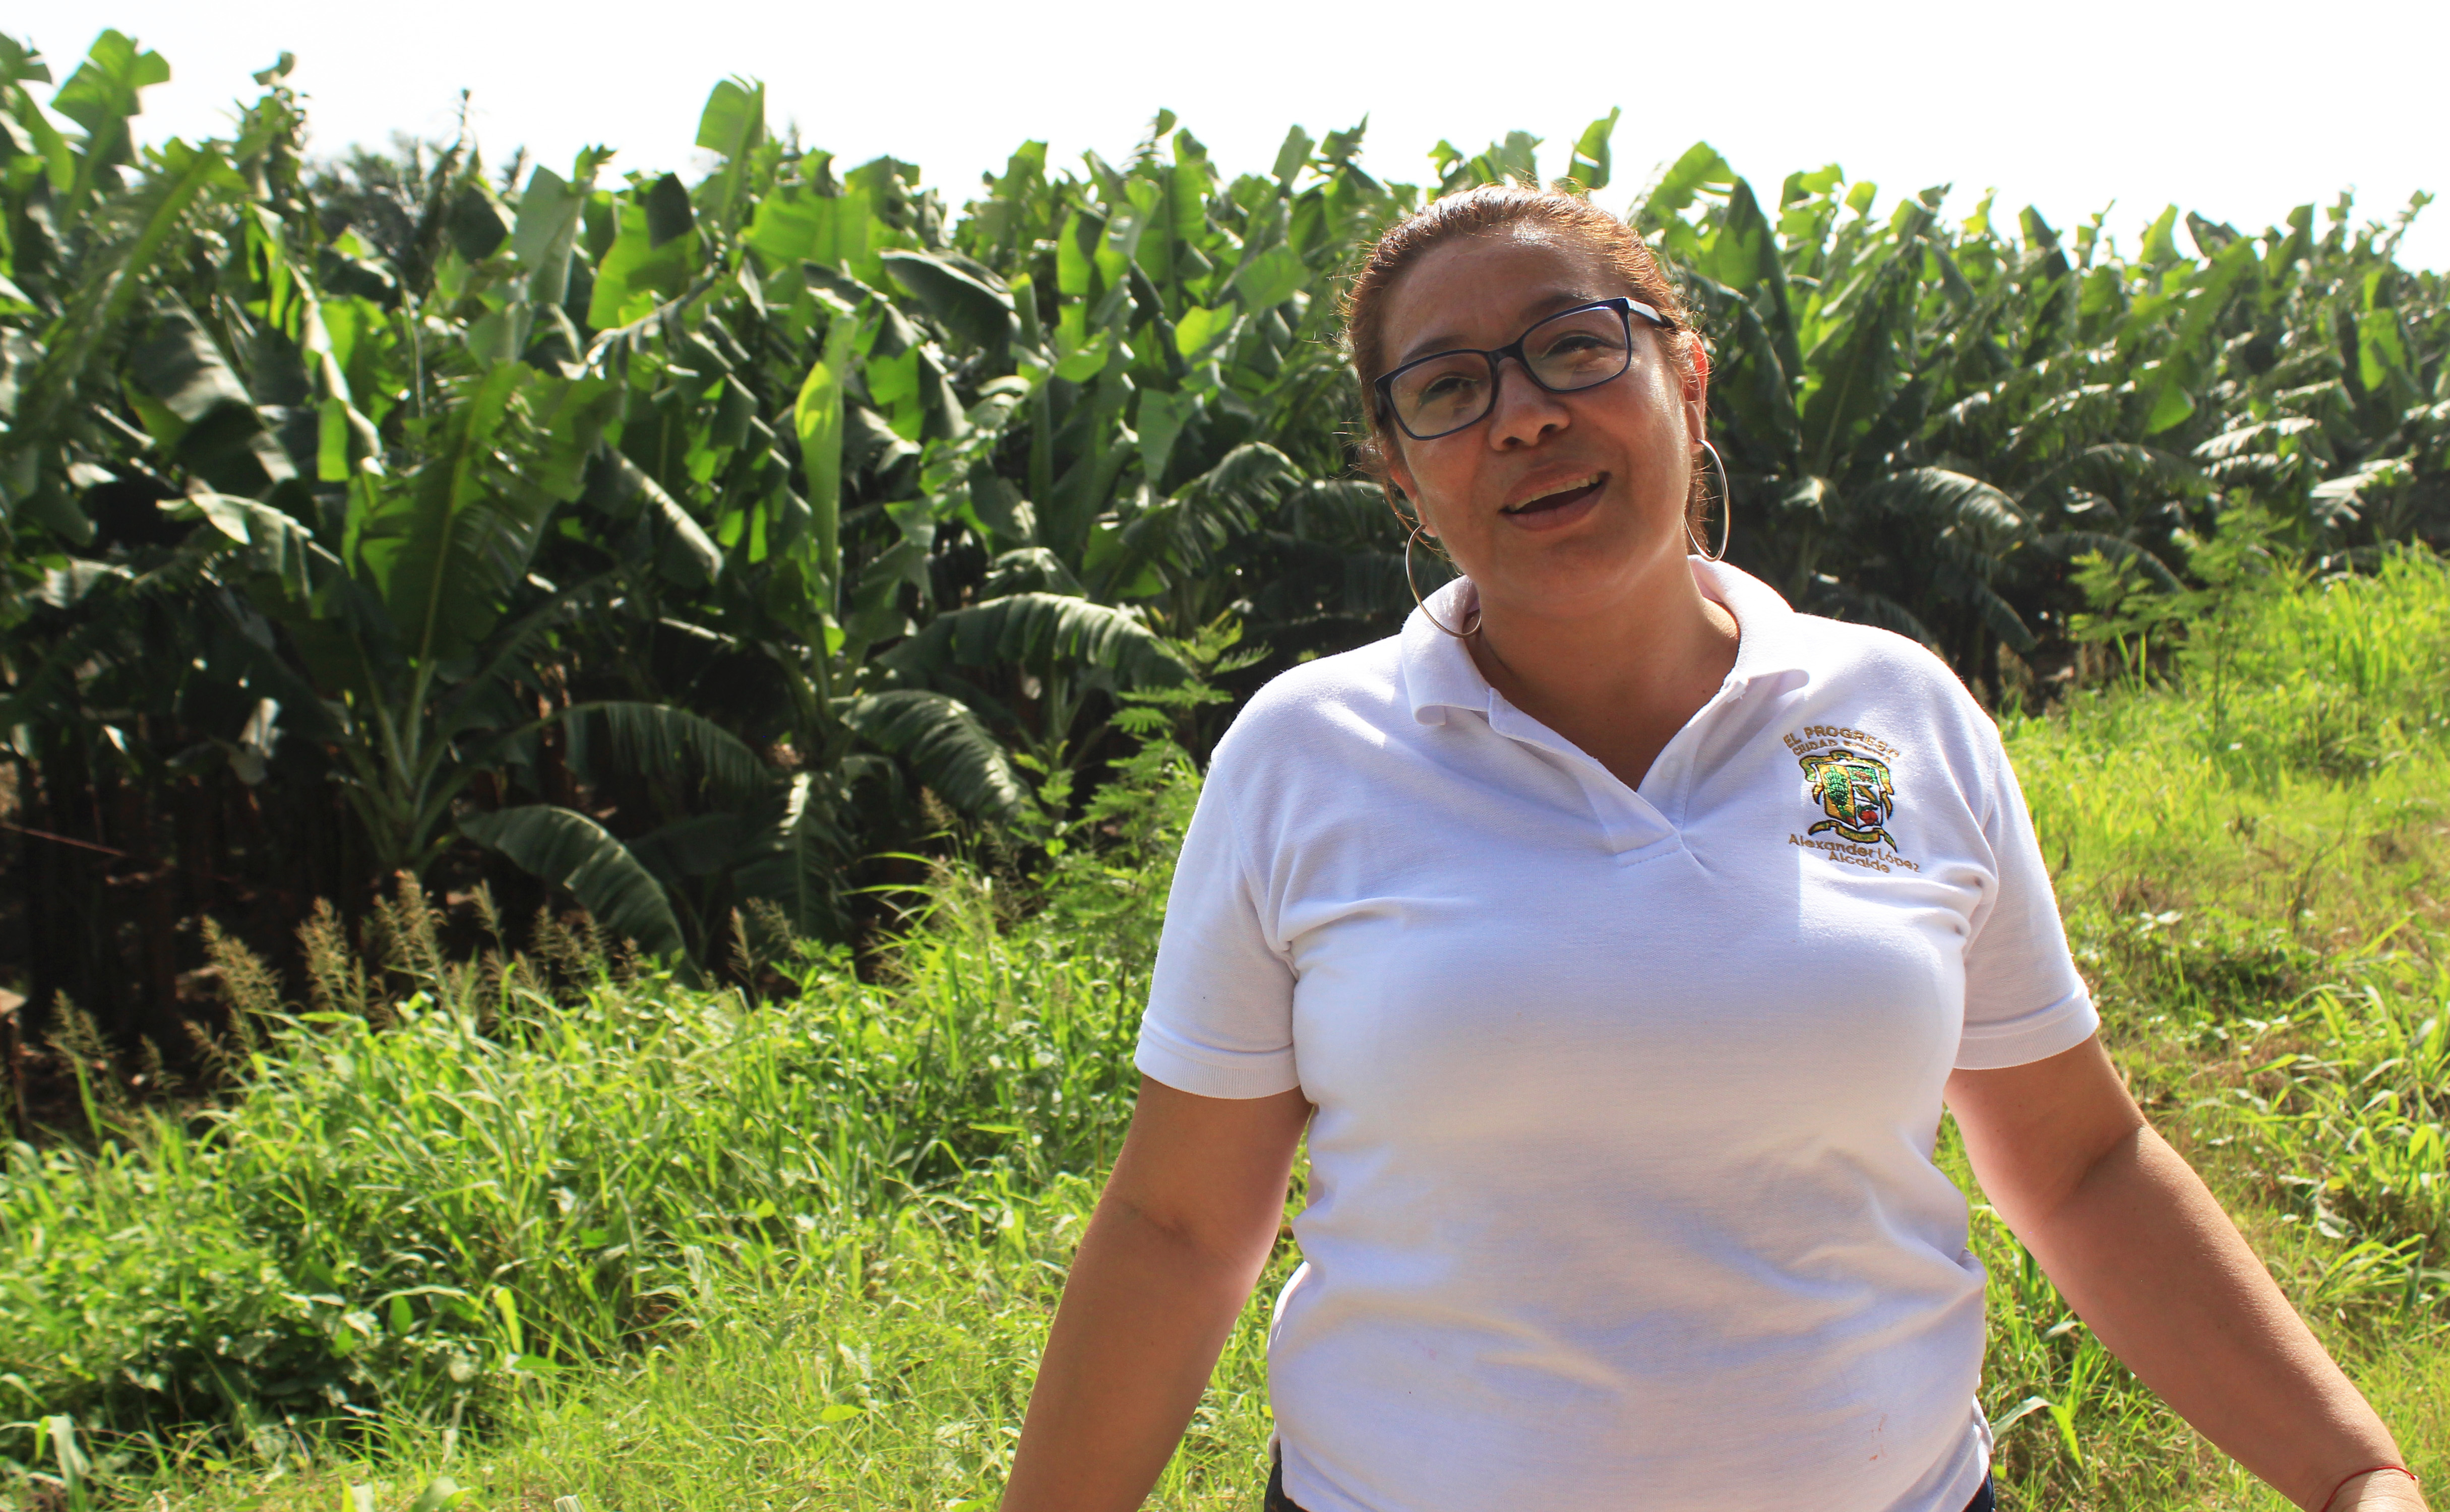 Gisela Cruz, the manager of the museum, says she only has good memories of her time living on the banana plantations. (María José Burgos/CBC)